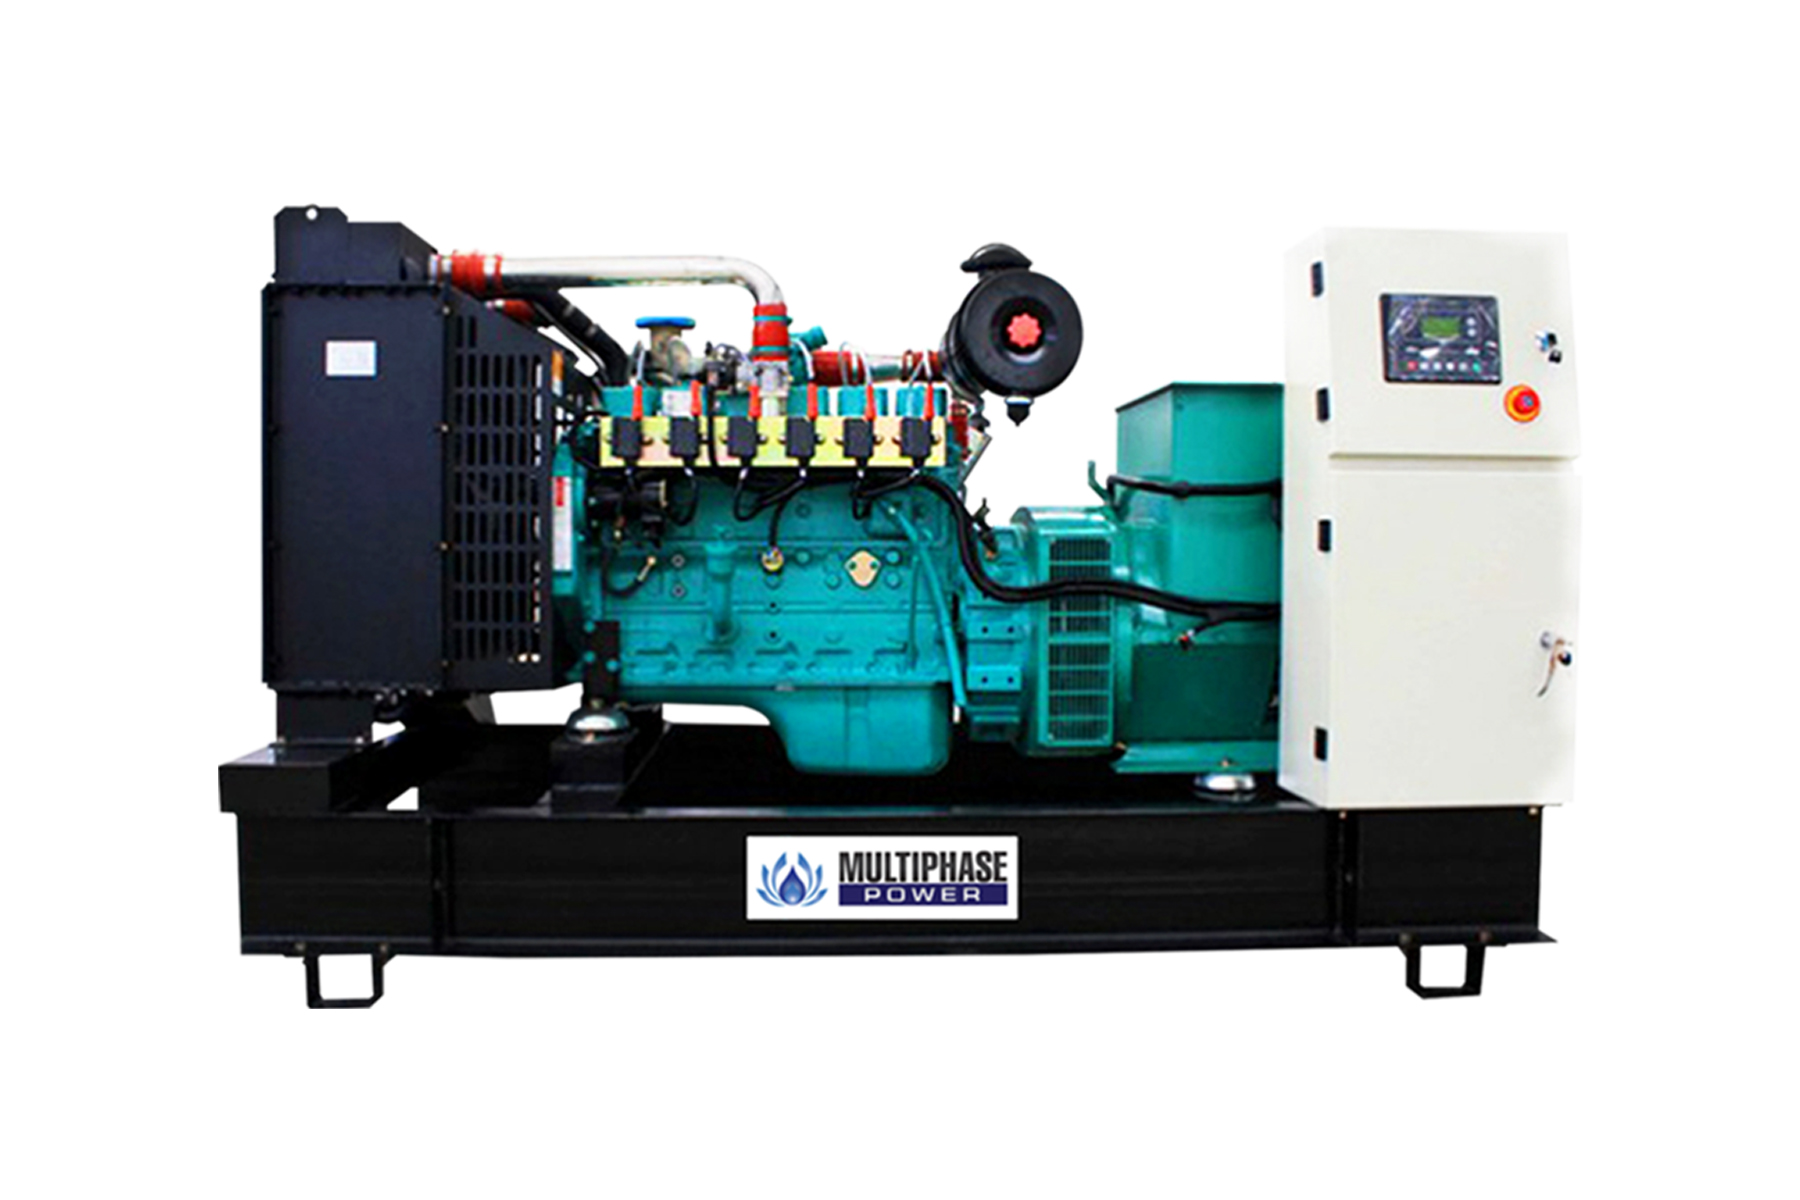 Multiphase Power Generator MP series cover a range of power from 10-3000 kVA, using diesel engine Cummins & Perkins. Call us : 02-168-3193-5